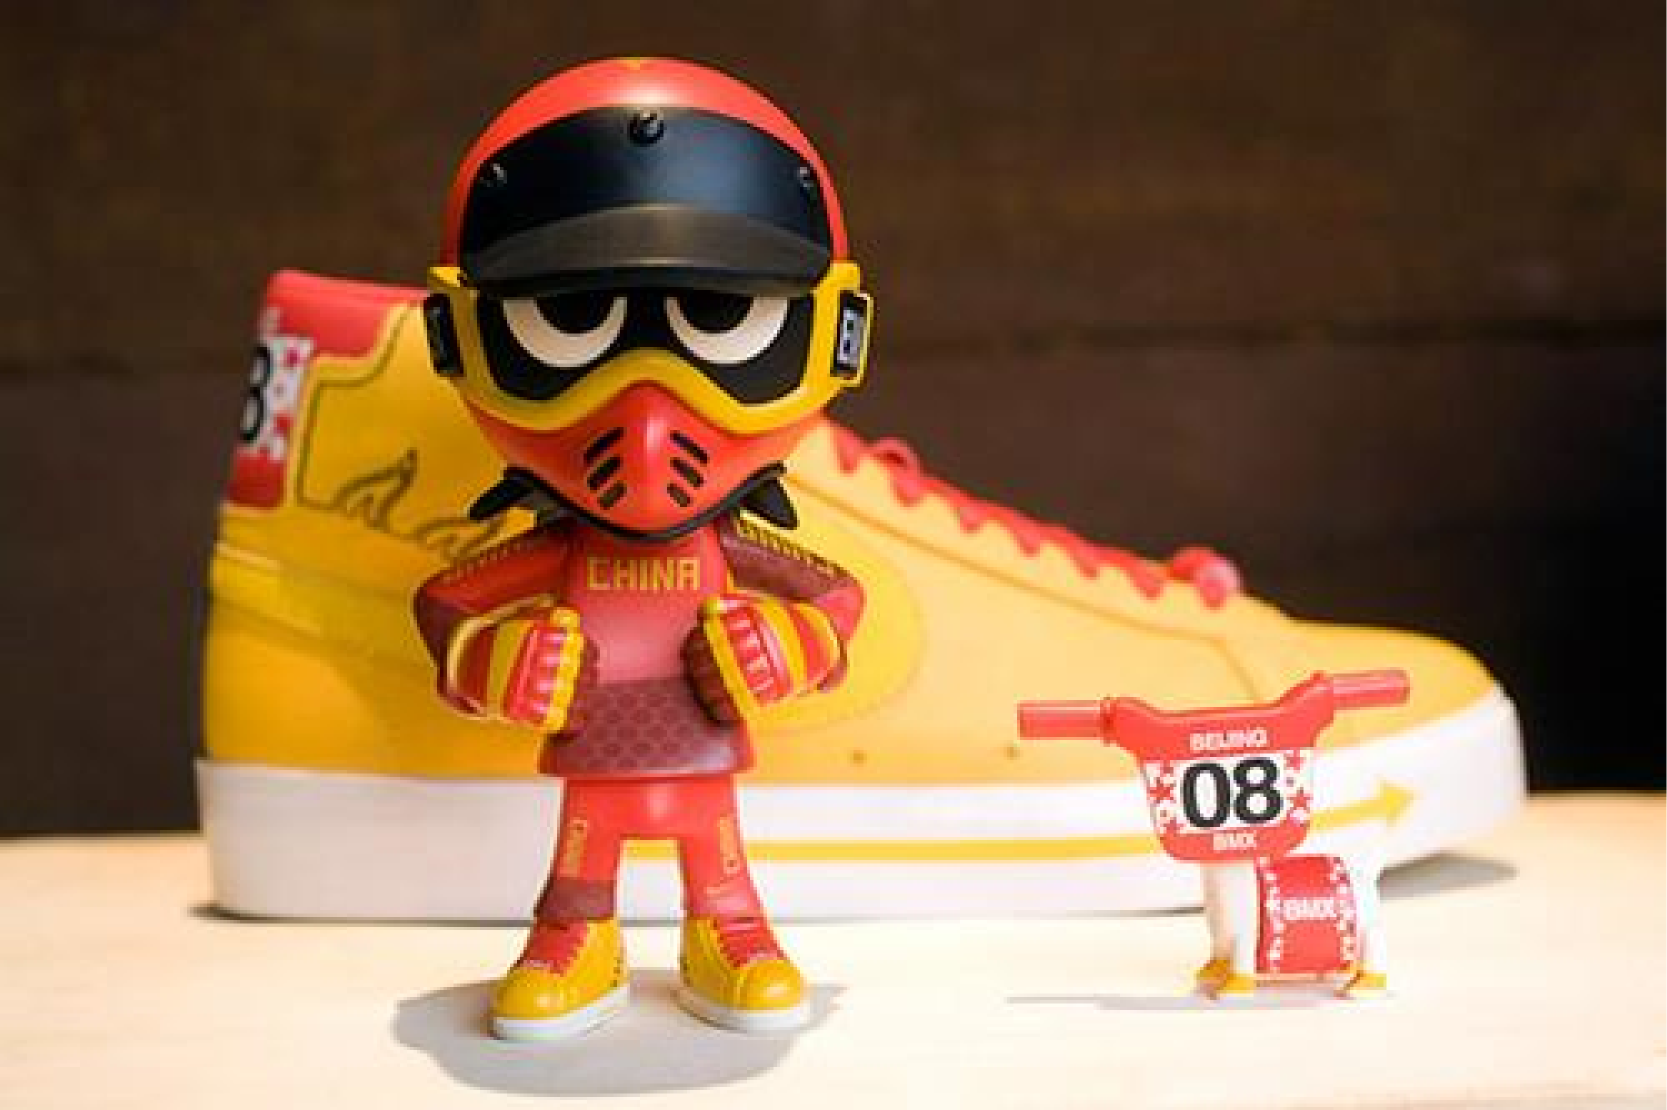 TBT  Michael Lau BMX Inspired Toy And Sneakers - Sugar Cayne 18908b0c1